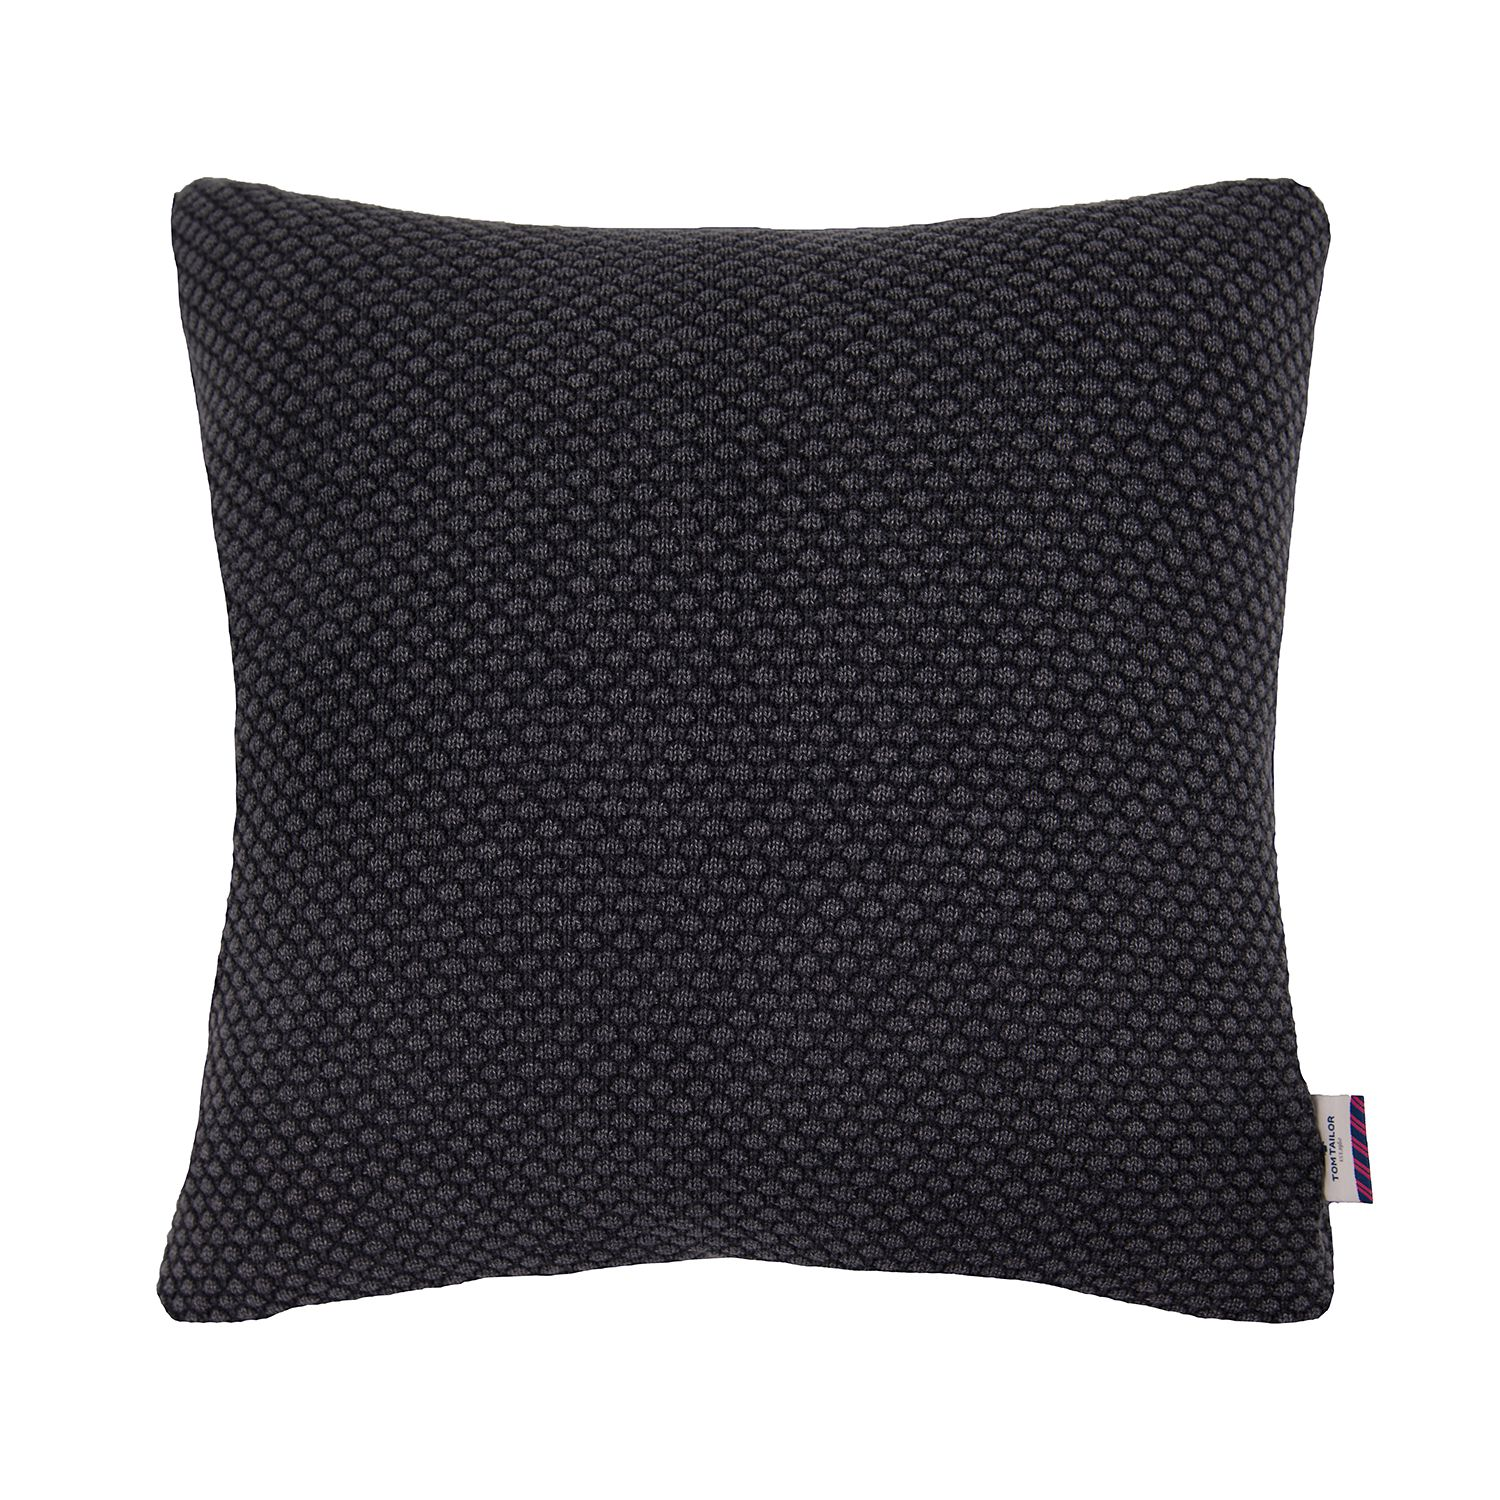 Home 24 - Housse de coussin strick t-bubble, tom tailor